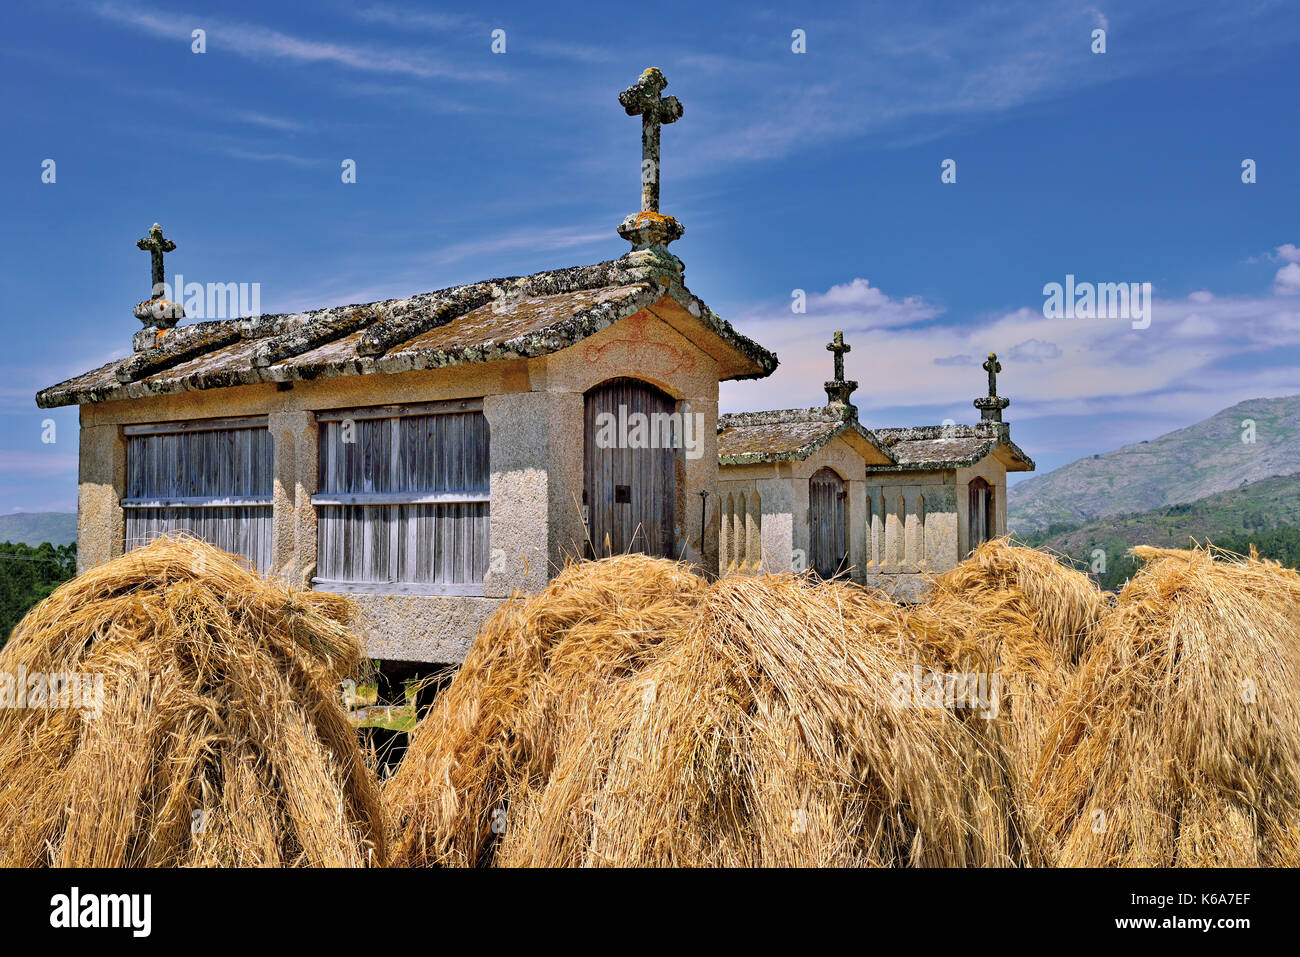 """Portugal, National Park Peneda Geres: Historic corn storages """"espuigueiros""""  with small haystacks Stock Photo"""